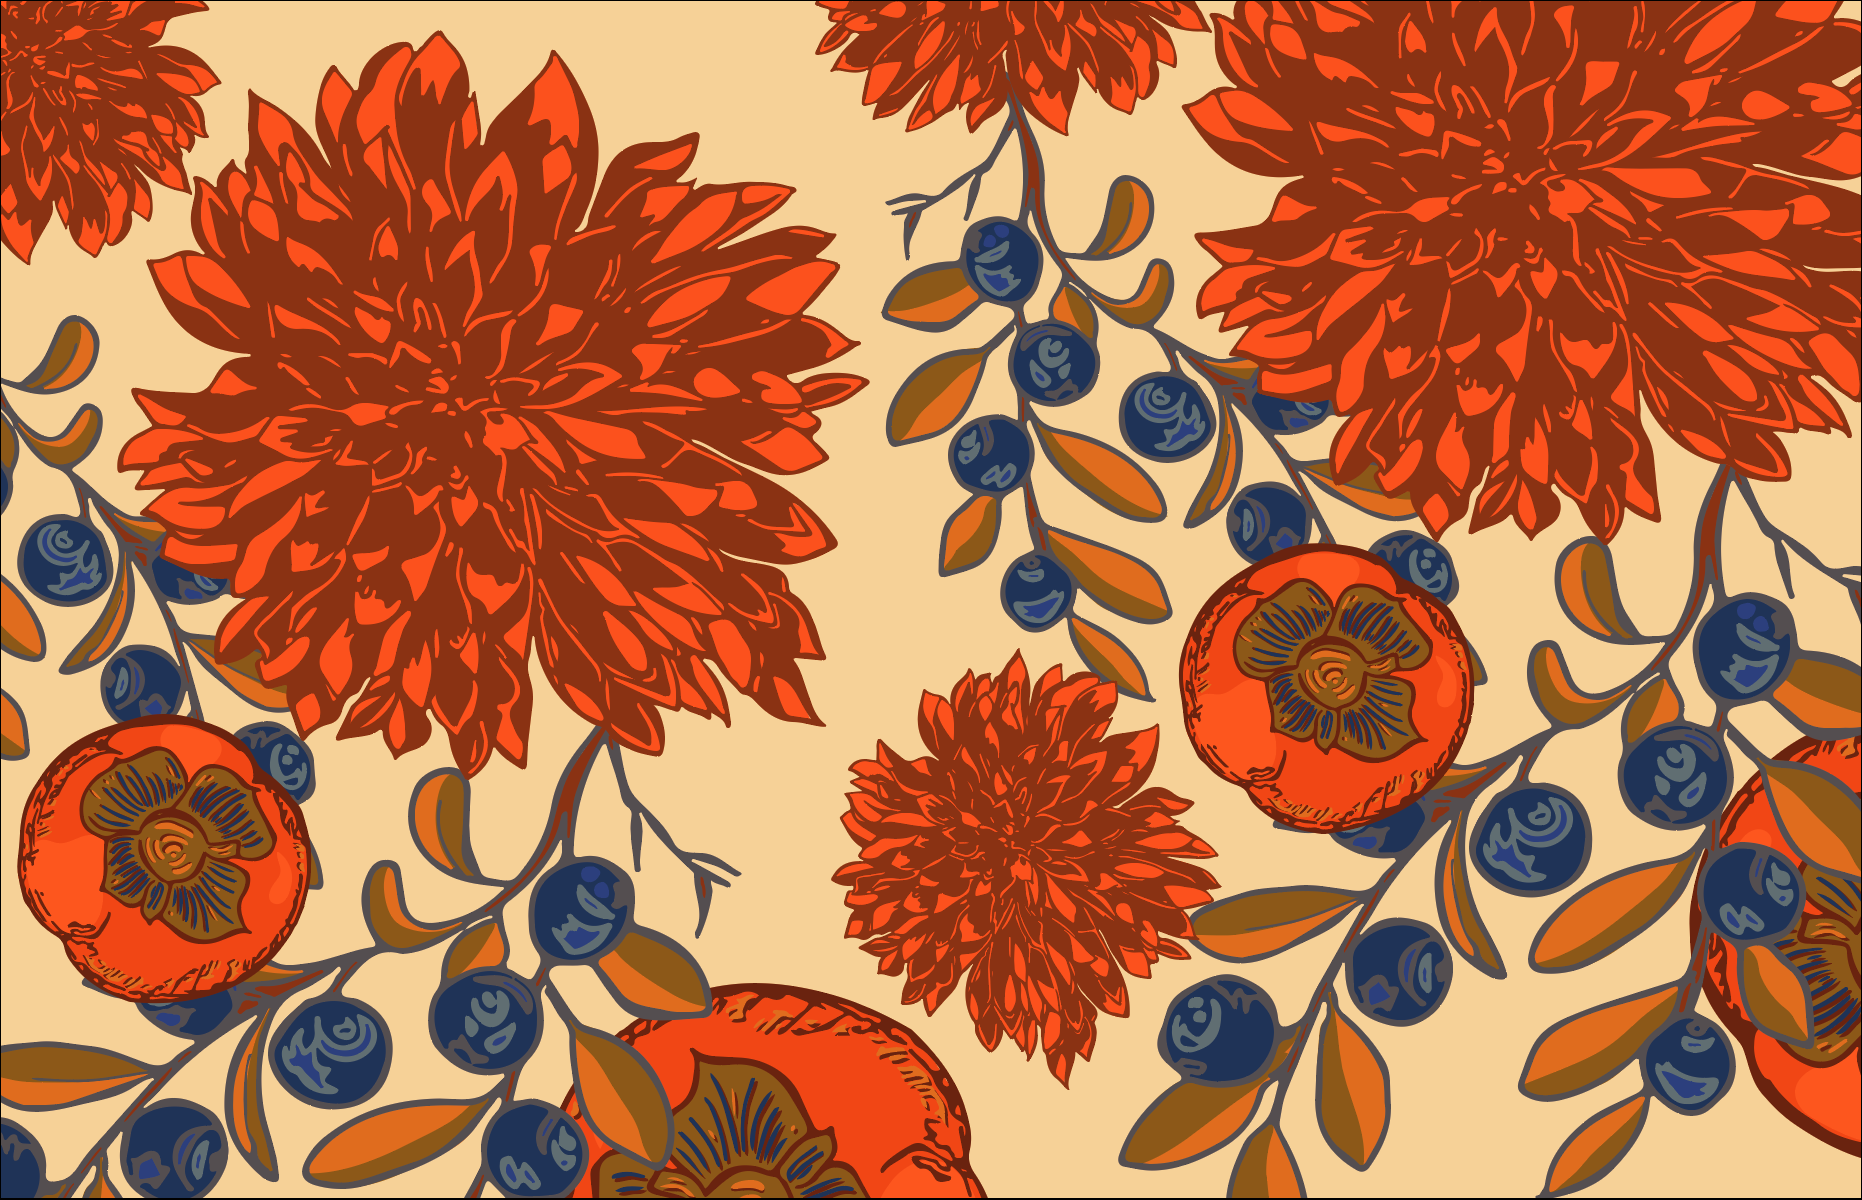 Illustration and pattern, closeup – Pen + ink, colored digitally